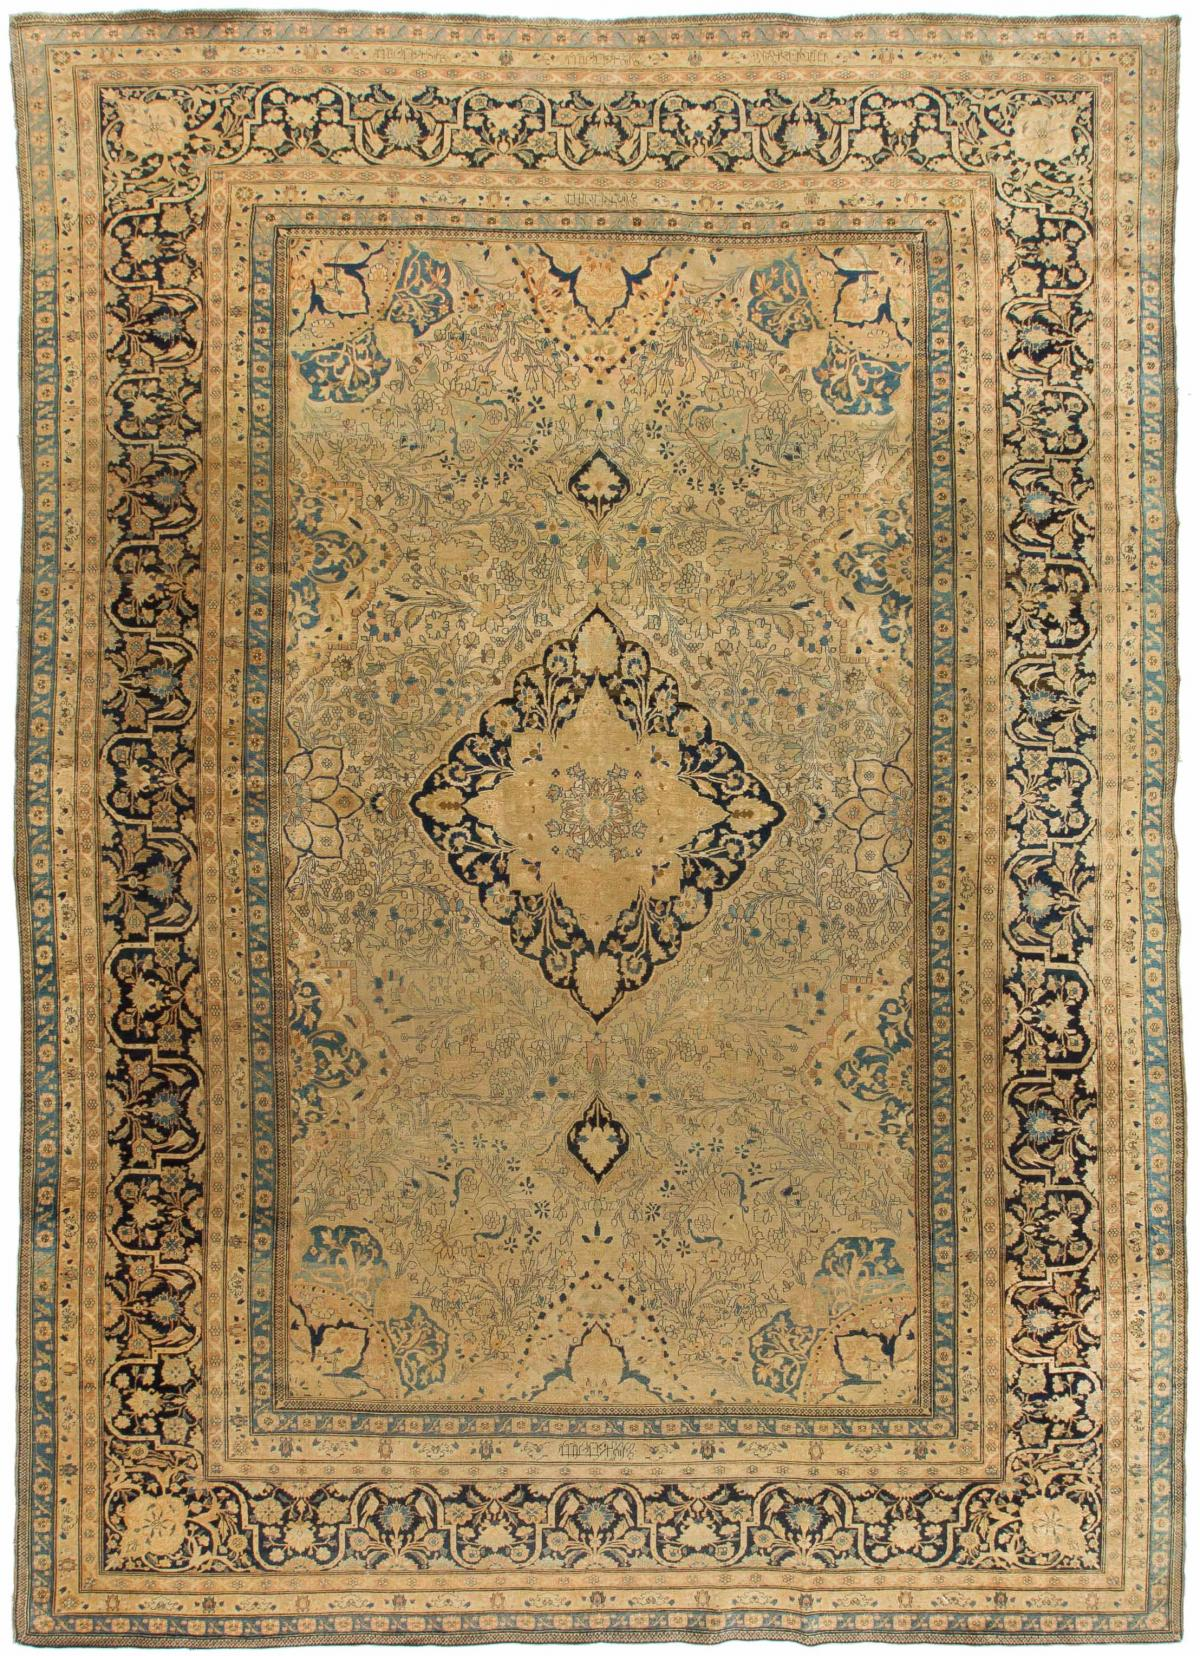 Rug Ant124248 Persian Kashan Antique Area Rugs By Safavieh